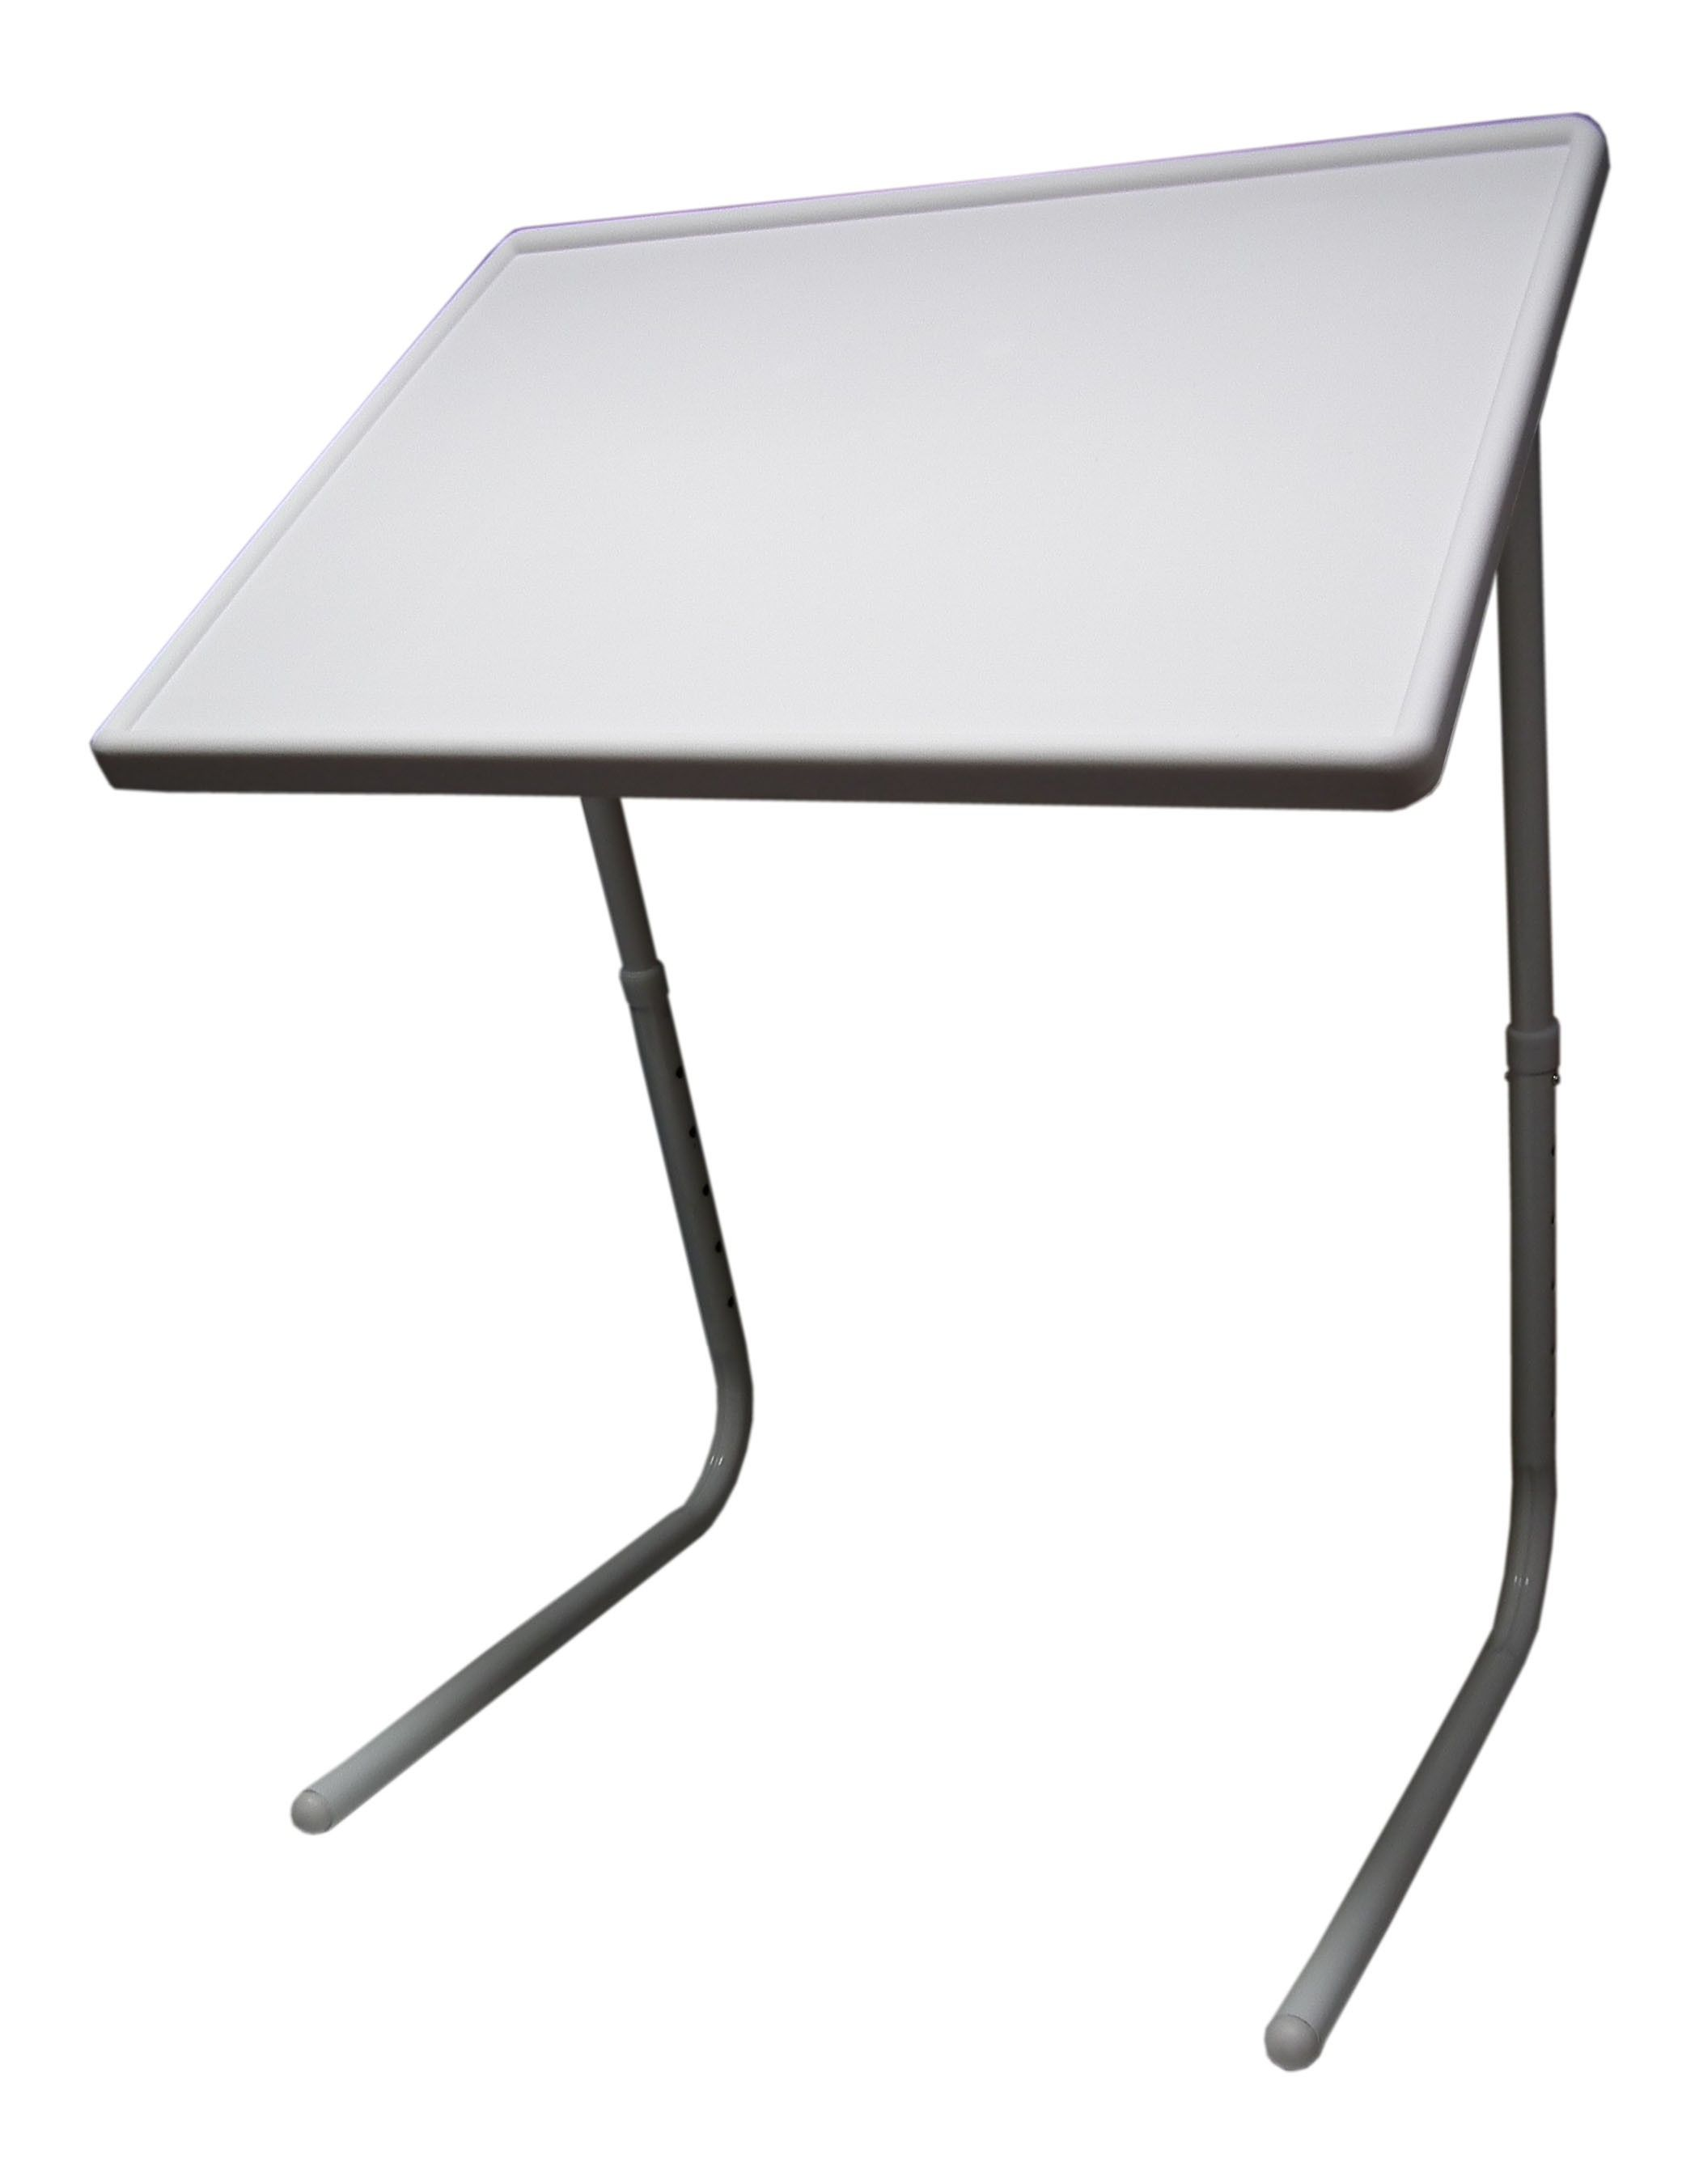 Niccol Glass Top Adjustable Study Table - Urban Ladder